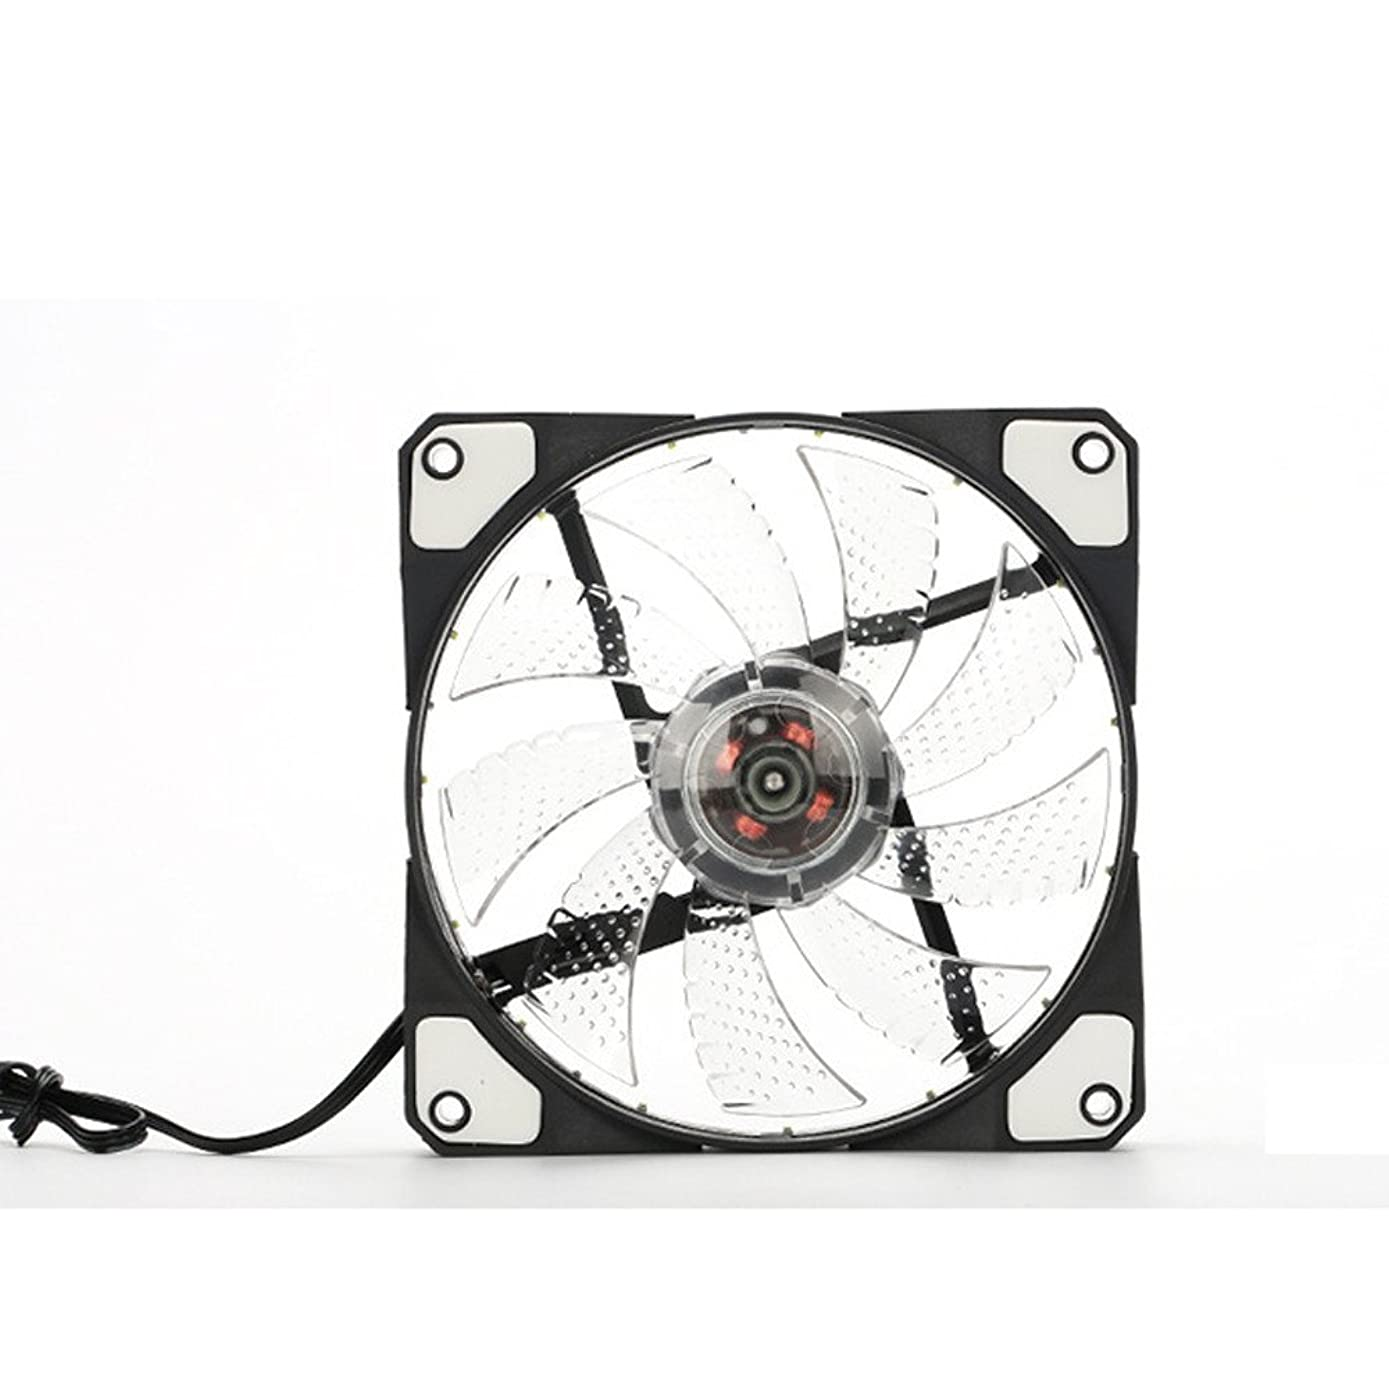 GOVOW-Tech 15 led Light Quite 120mm DC 12V 4Pin PC Computer Case Cooling Cool Fan Mod Standard Low Noise Case Fan - High Tensile Strength - Innovative Design